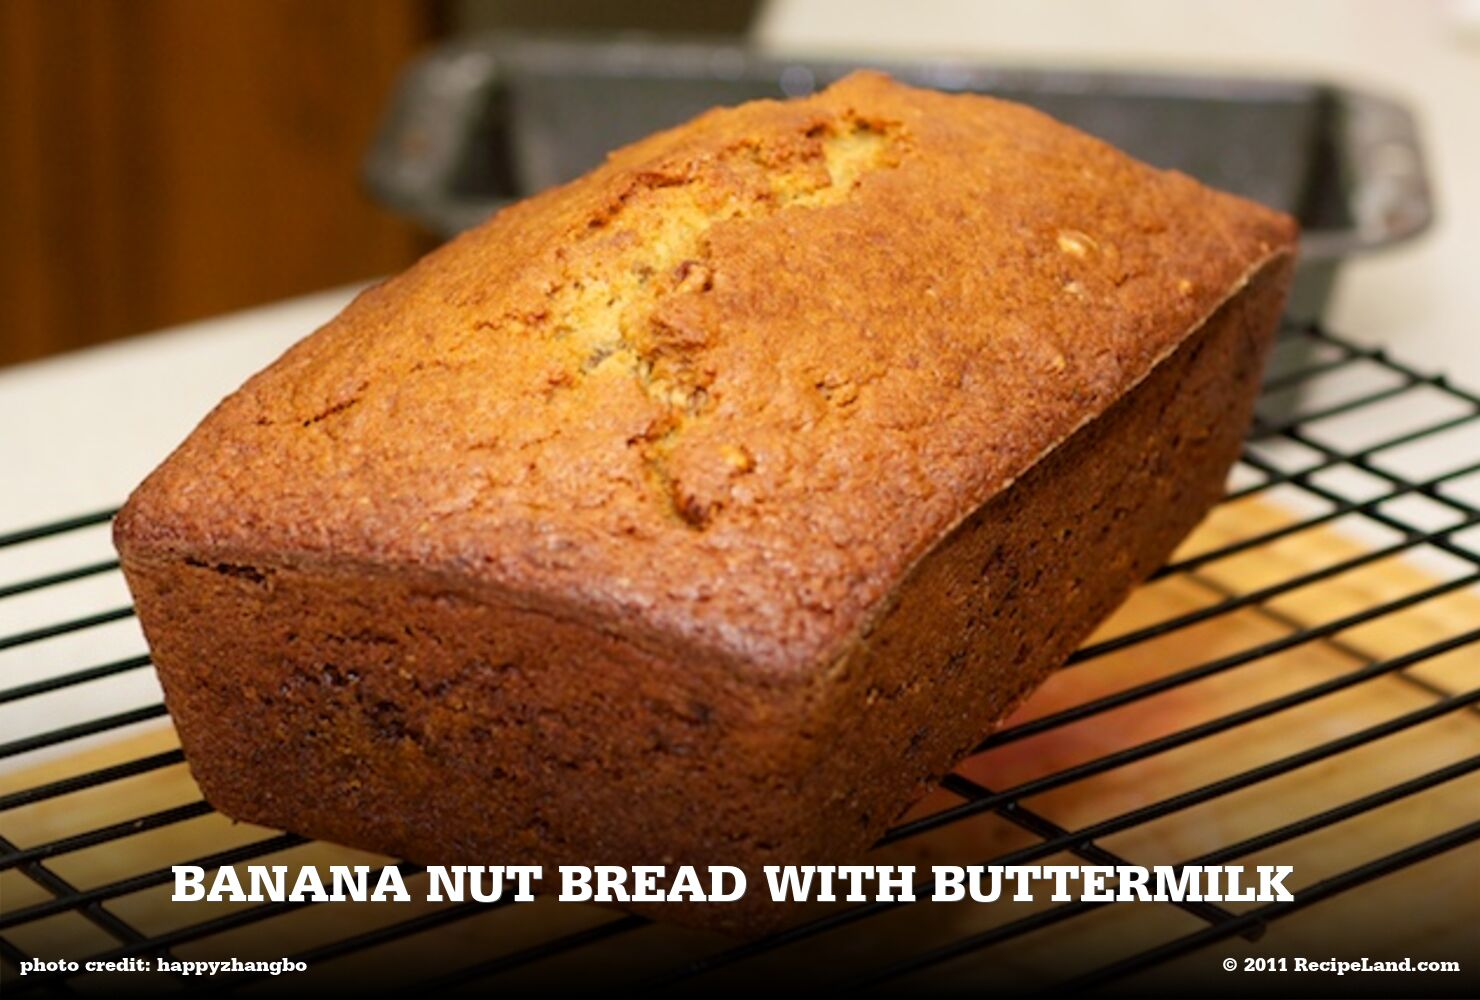 Banana Nut Bread with Buttermilk